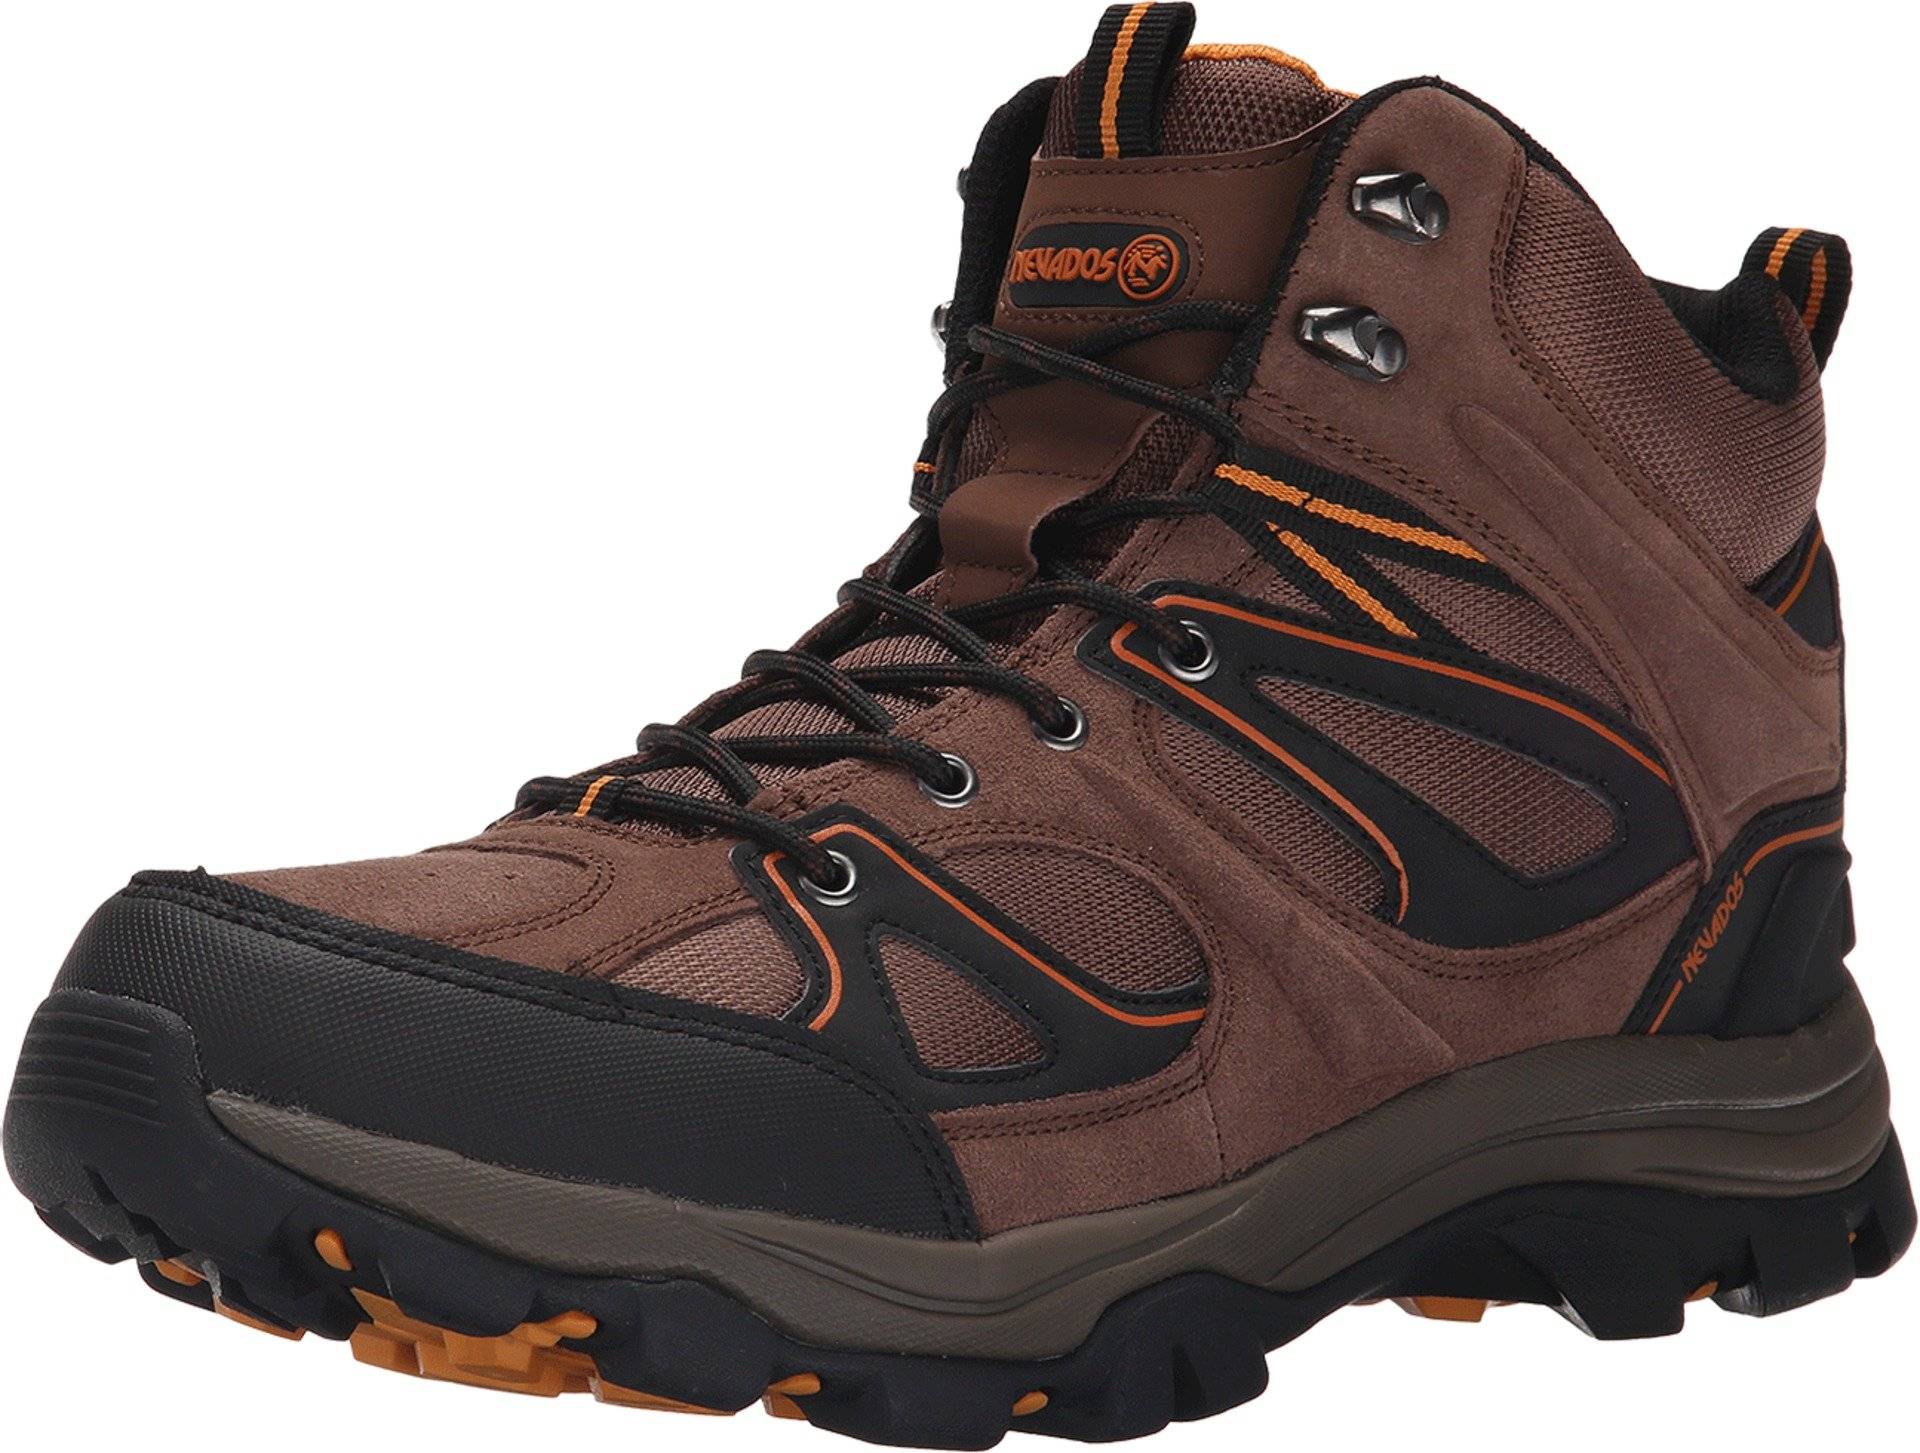 Nevados Men's Talus Hiking Boot, Dark Tan/Black/Orange, 12 M US